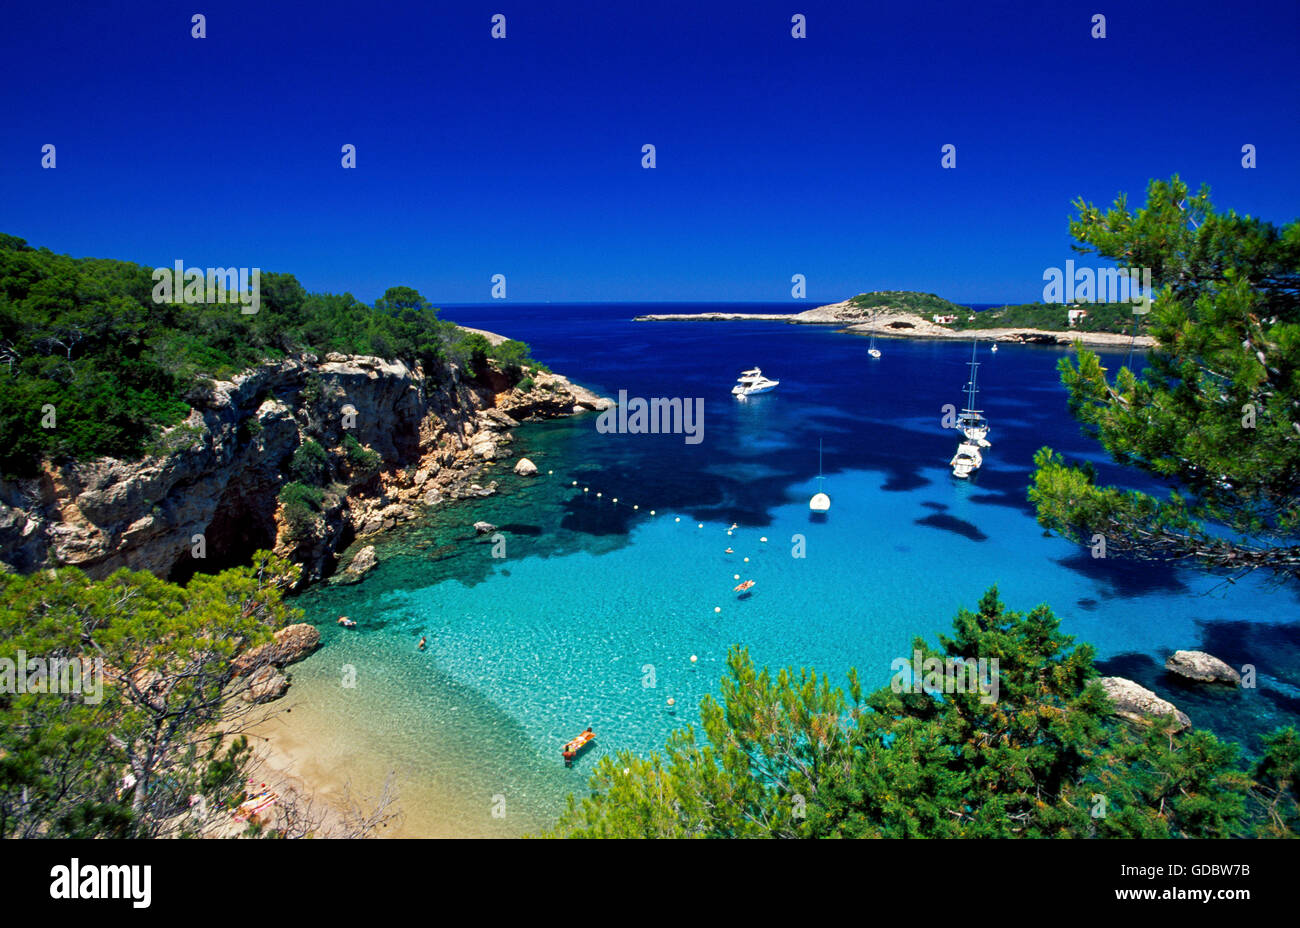 Bay nearby Portinatx, Ibiza, Balearic Islands, Spain - Stock Image